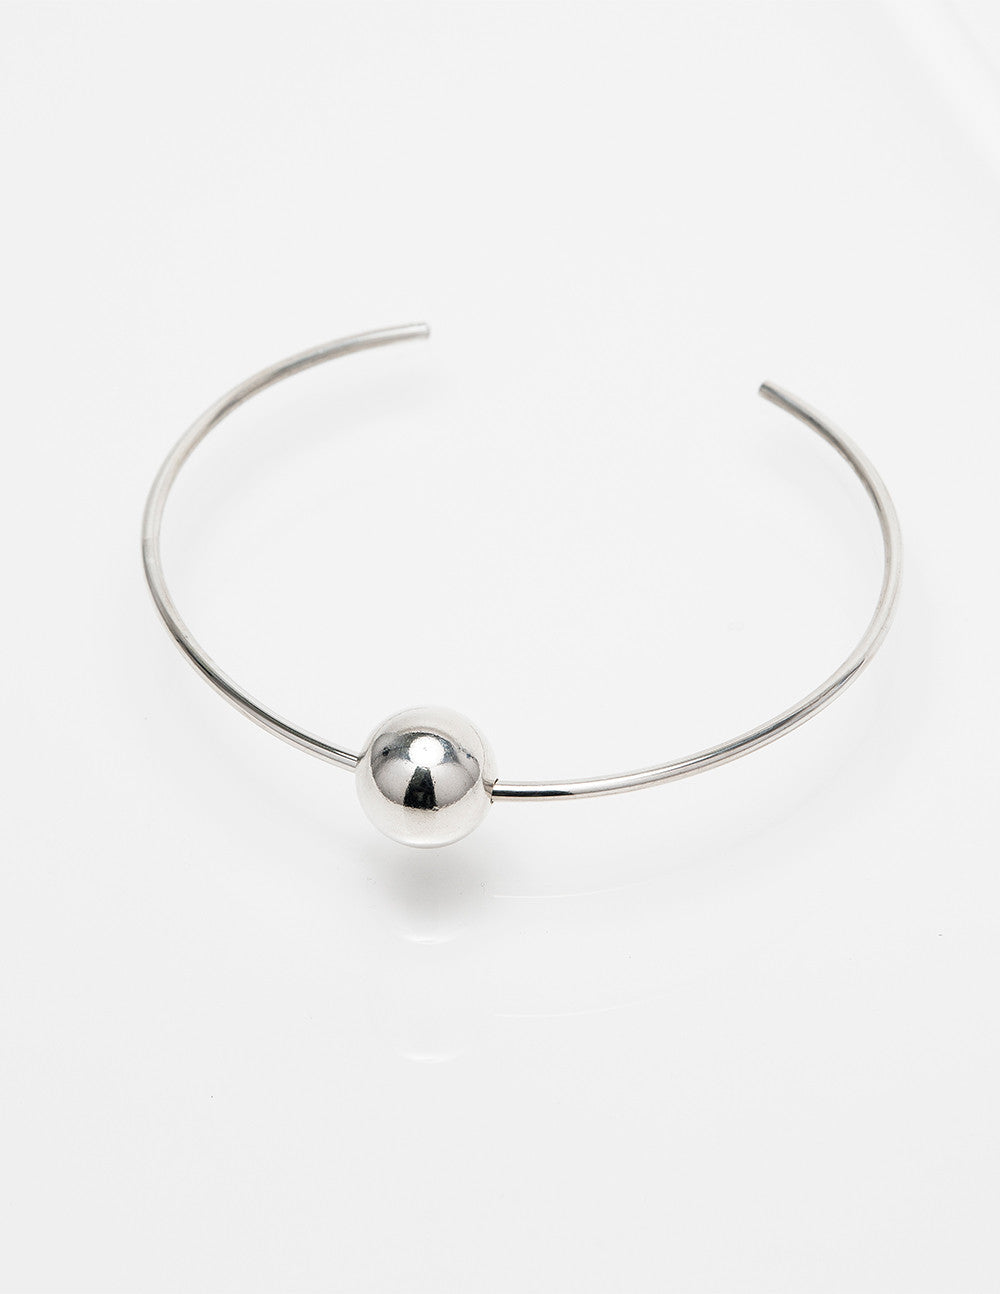 Round Collar with Sphere